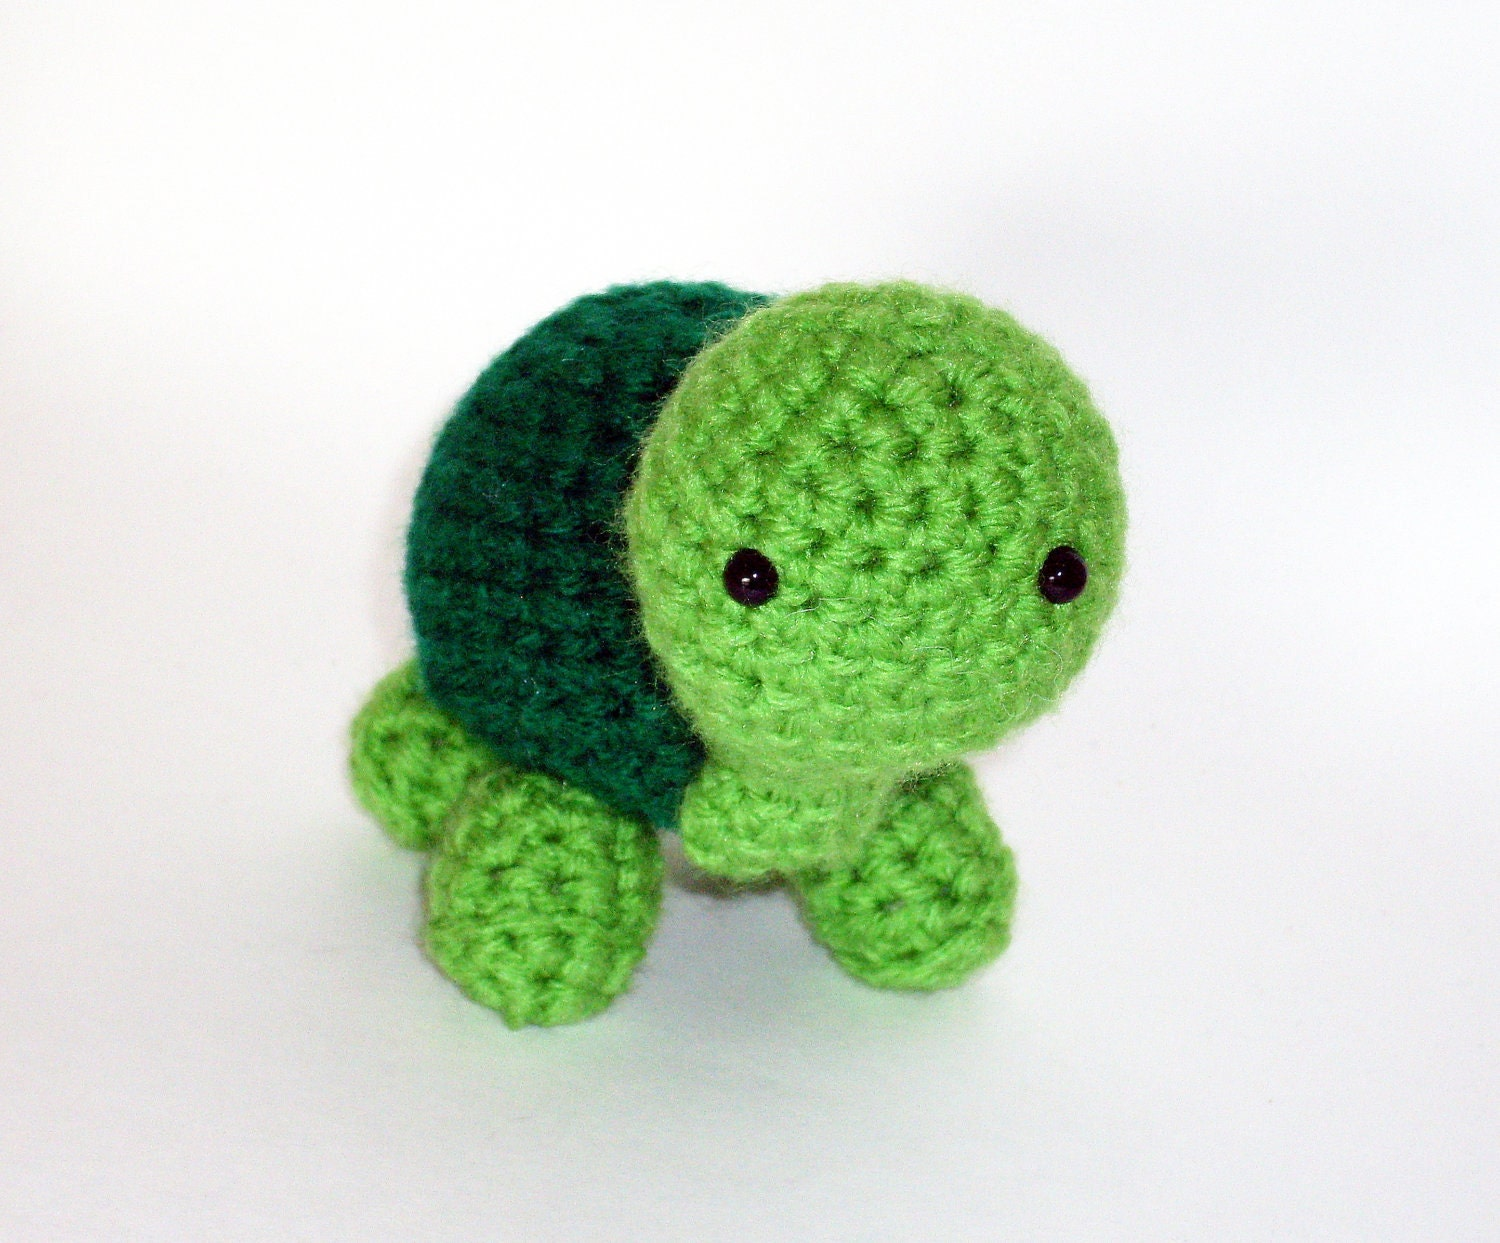 Amigurumi Askina Etsy : Amigurumi Crochet Turtle Stuffed Animal Green by teslas90 ...